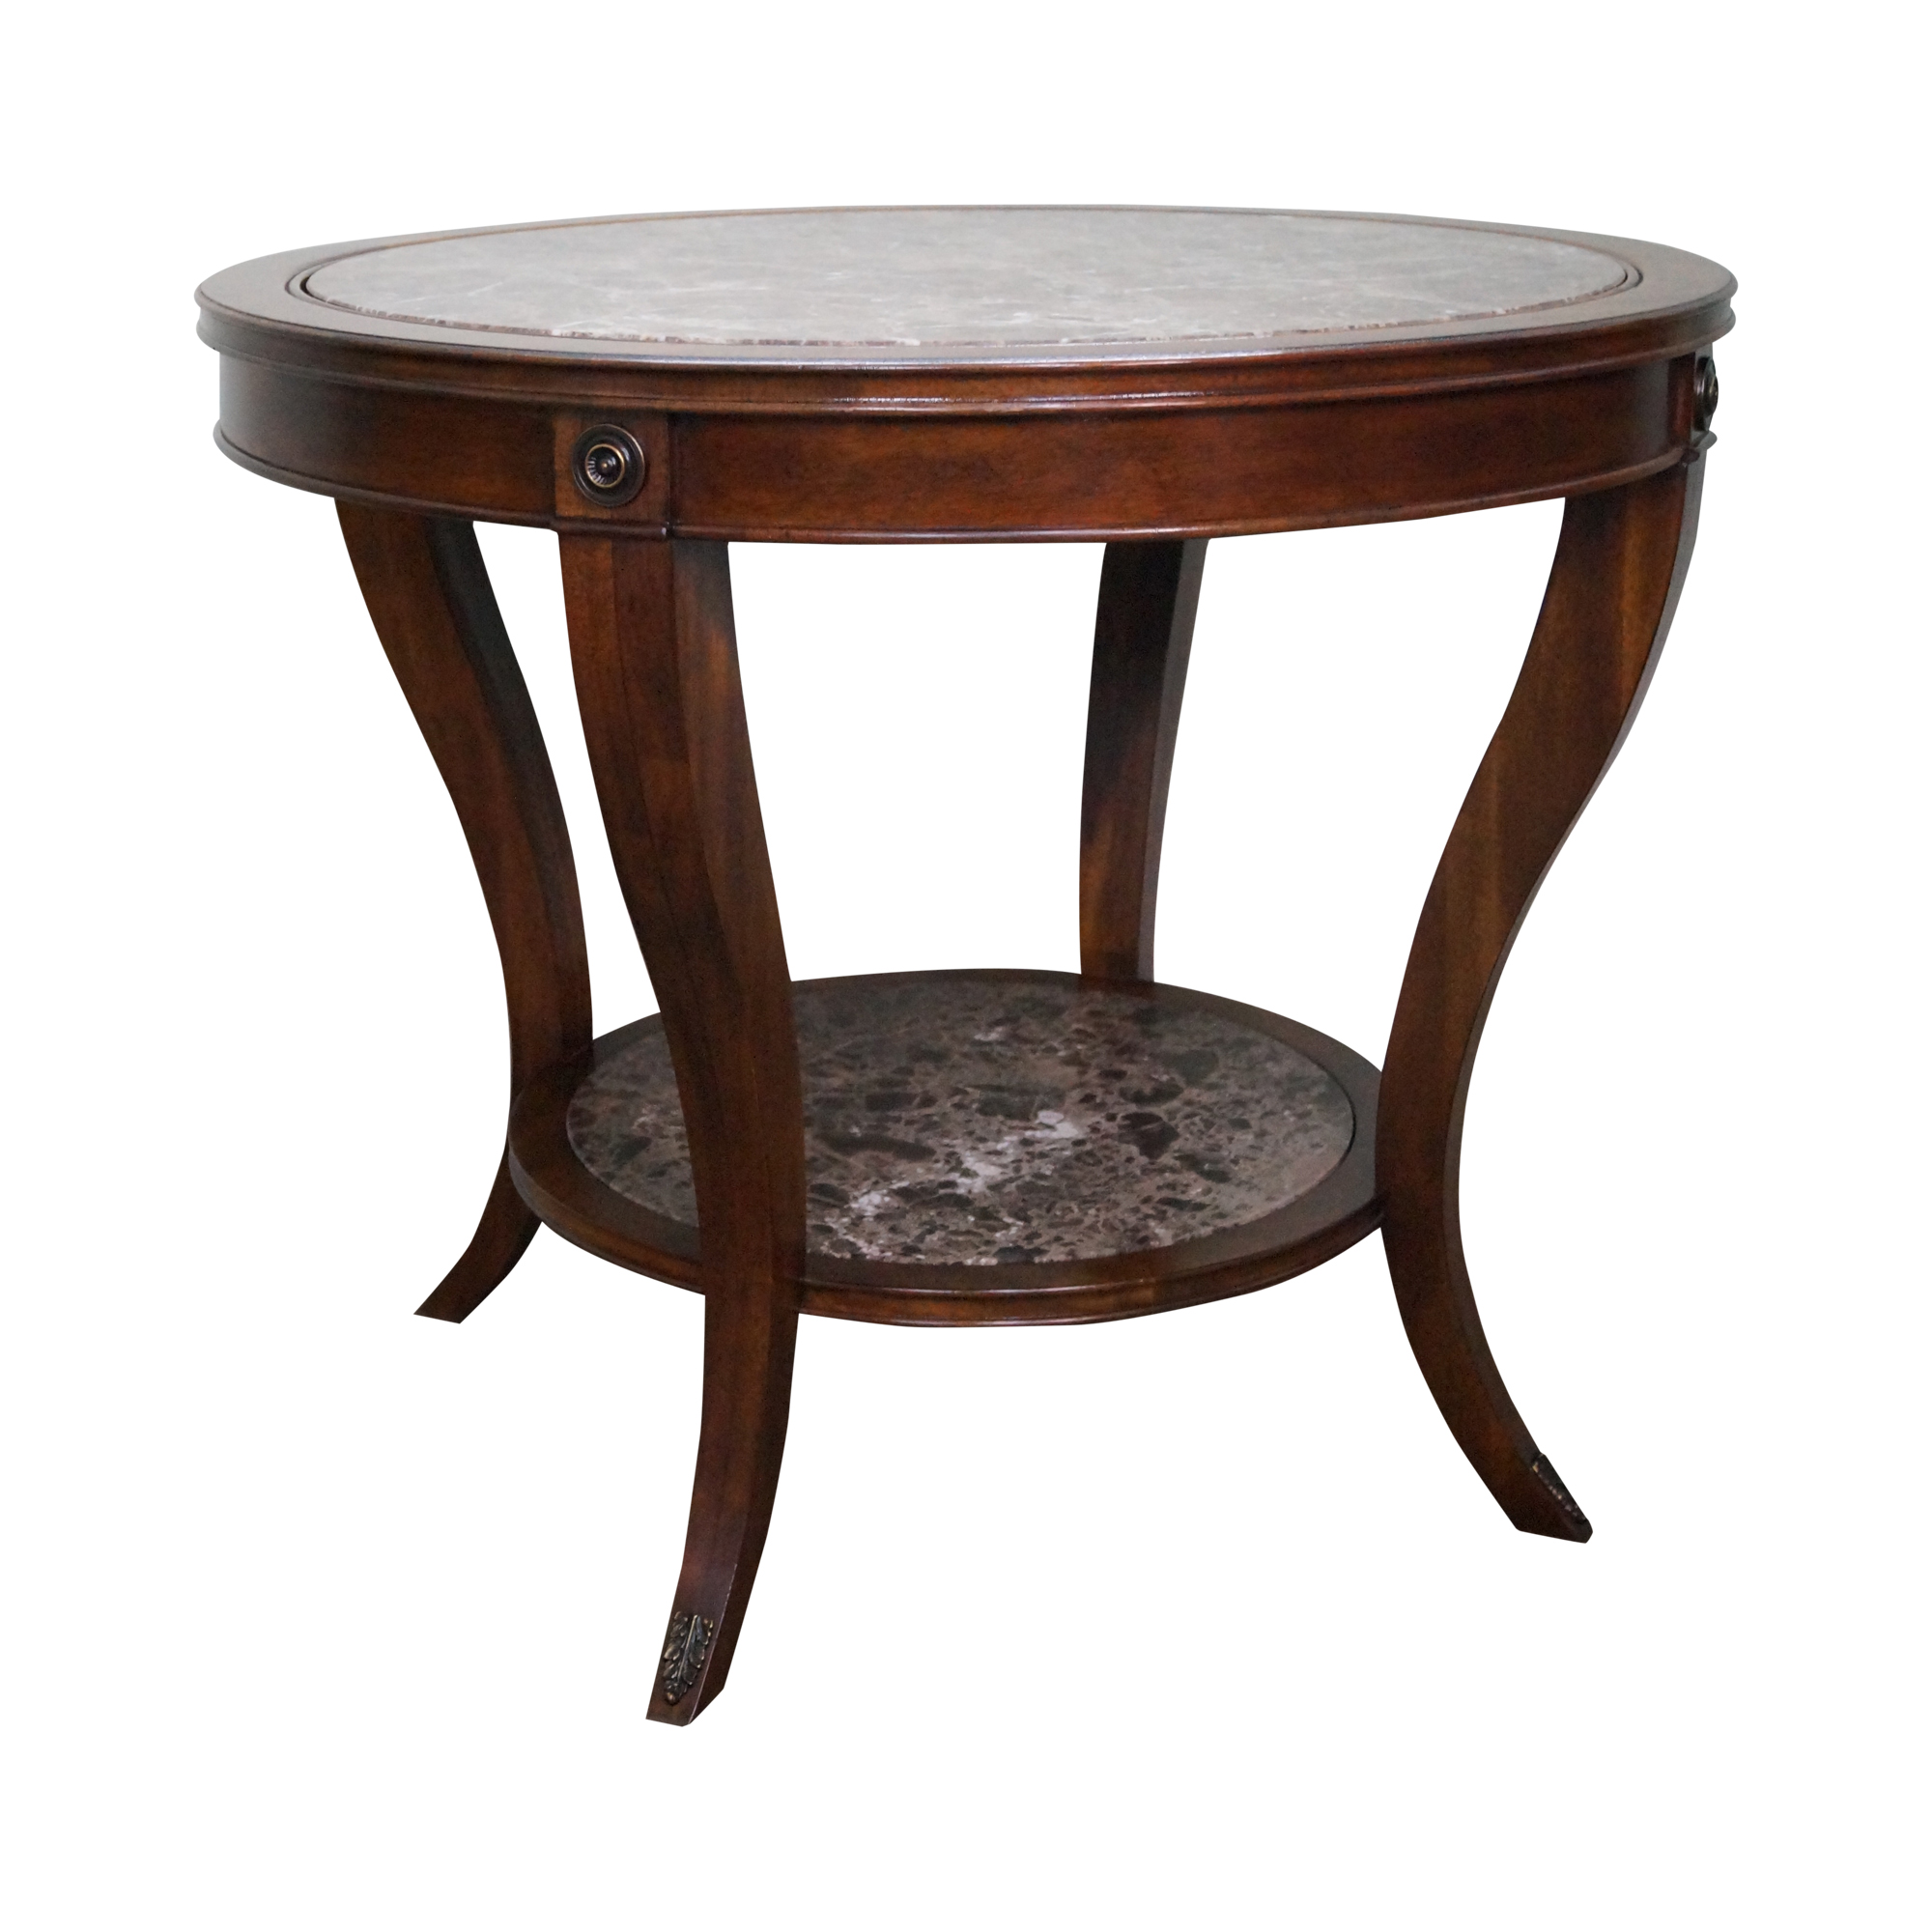 Drexel heritage mahogany regency center table chairish geotapseo Image collections